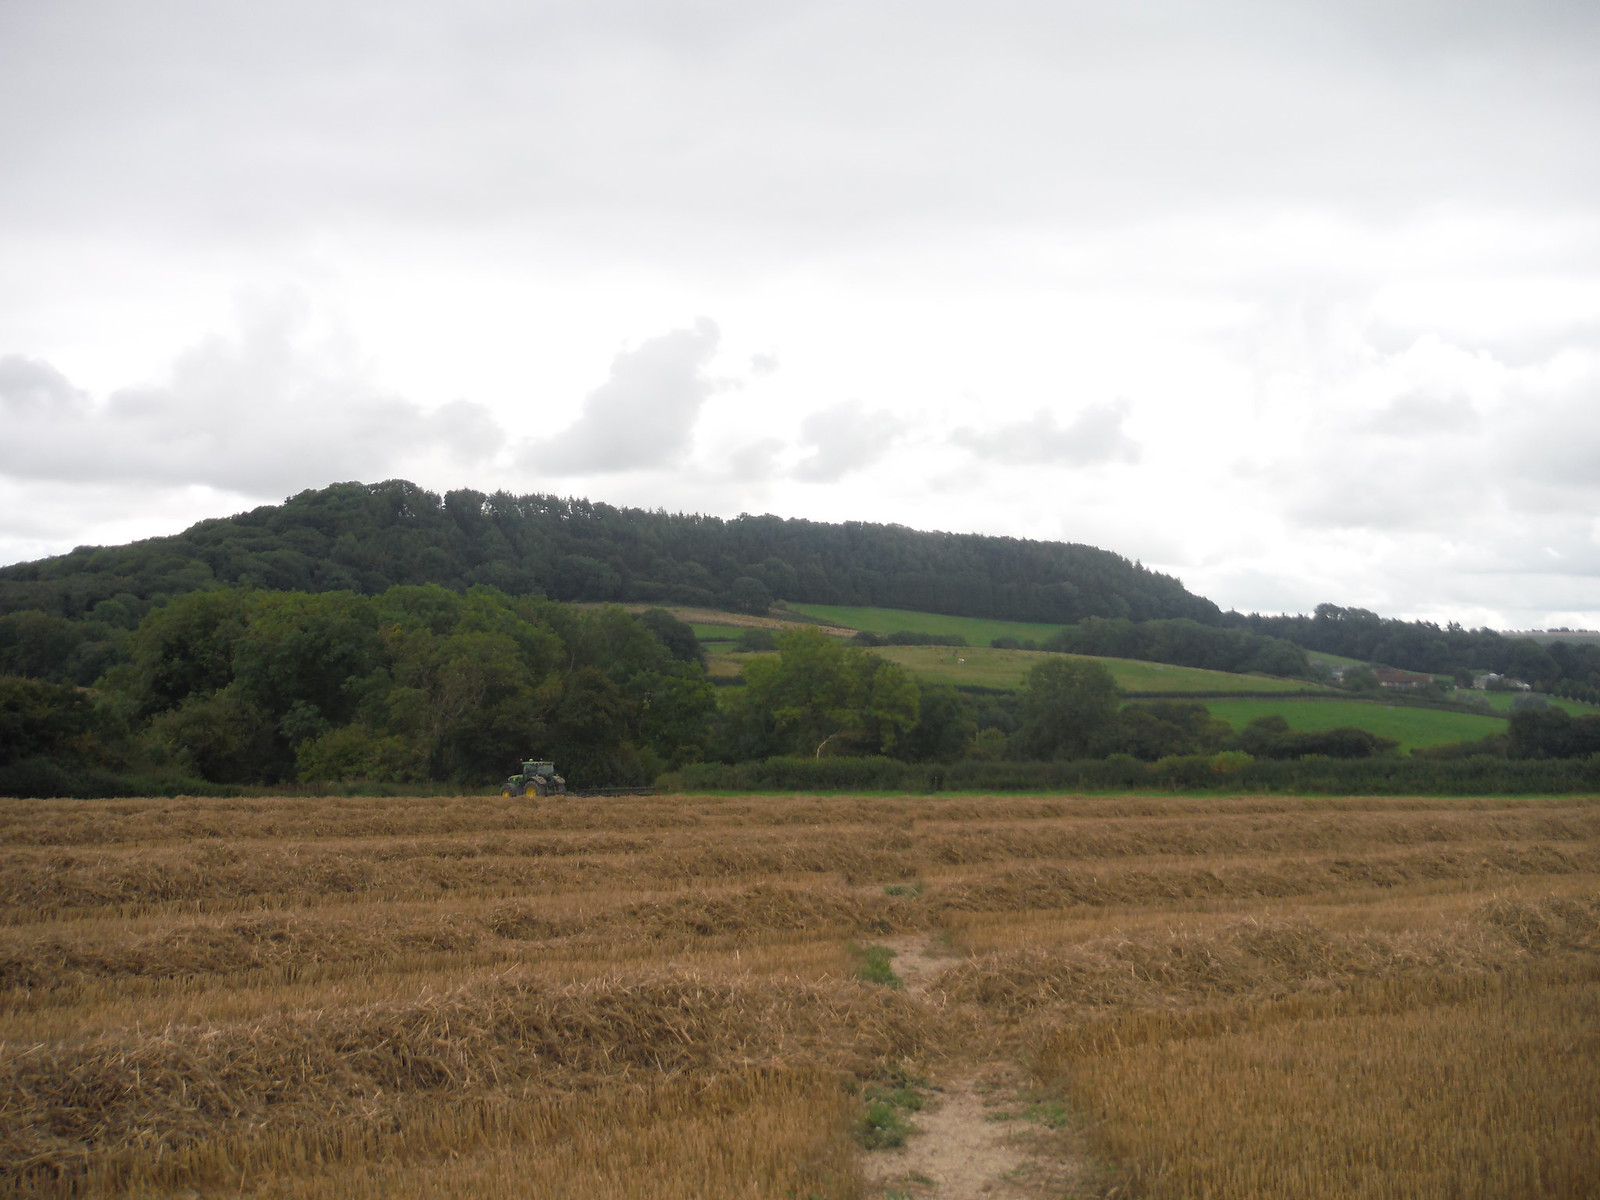 Castle Ditches Iron Age Hillfort Site, from Chantry Hill SWC Walk 250 Tisbury Circular via Alvediston